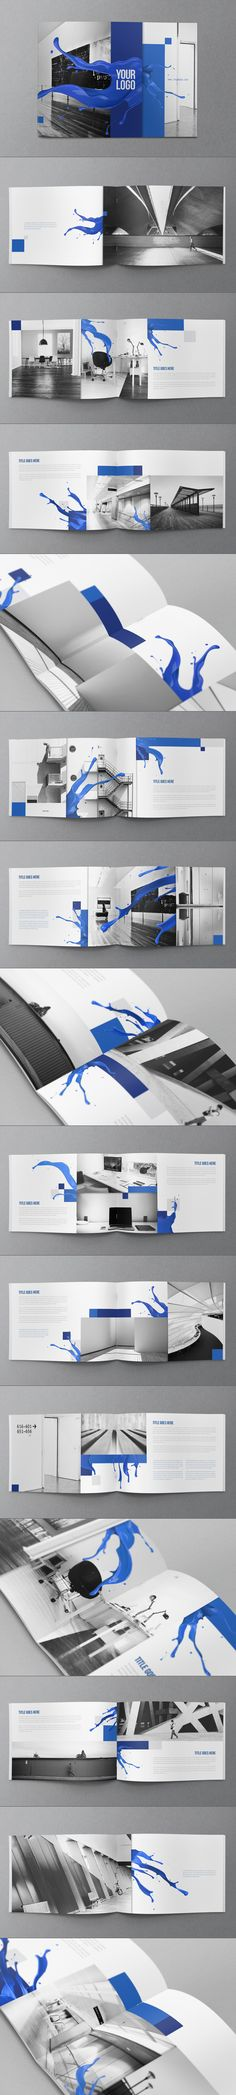 Creative Blue Fresh Brochure Design